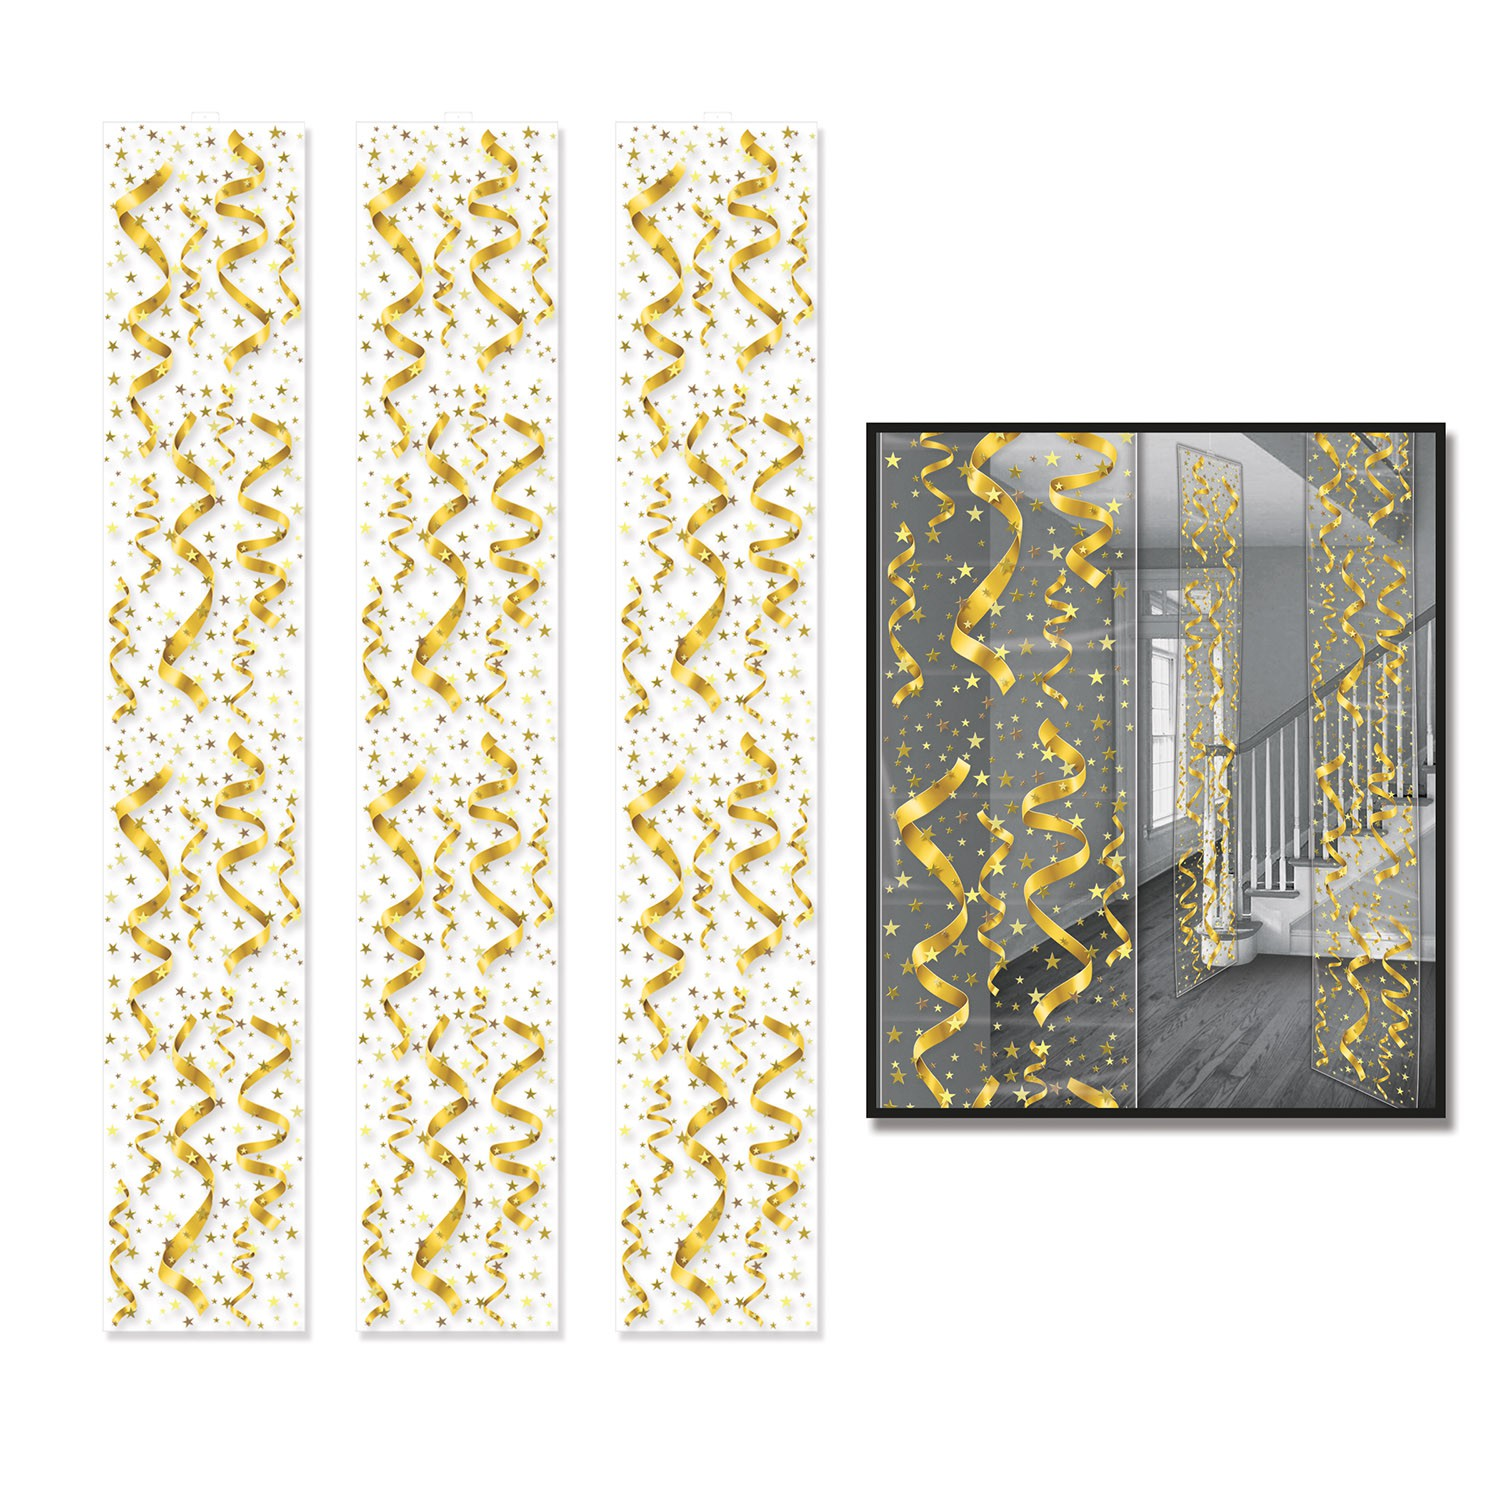 GOLD PARTY PANELS DECORATION STREAMERS & STARS - PACK OF 3